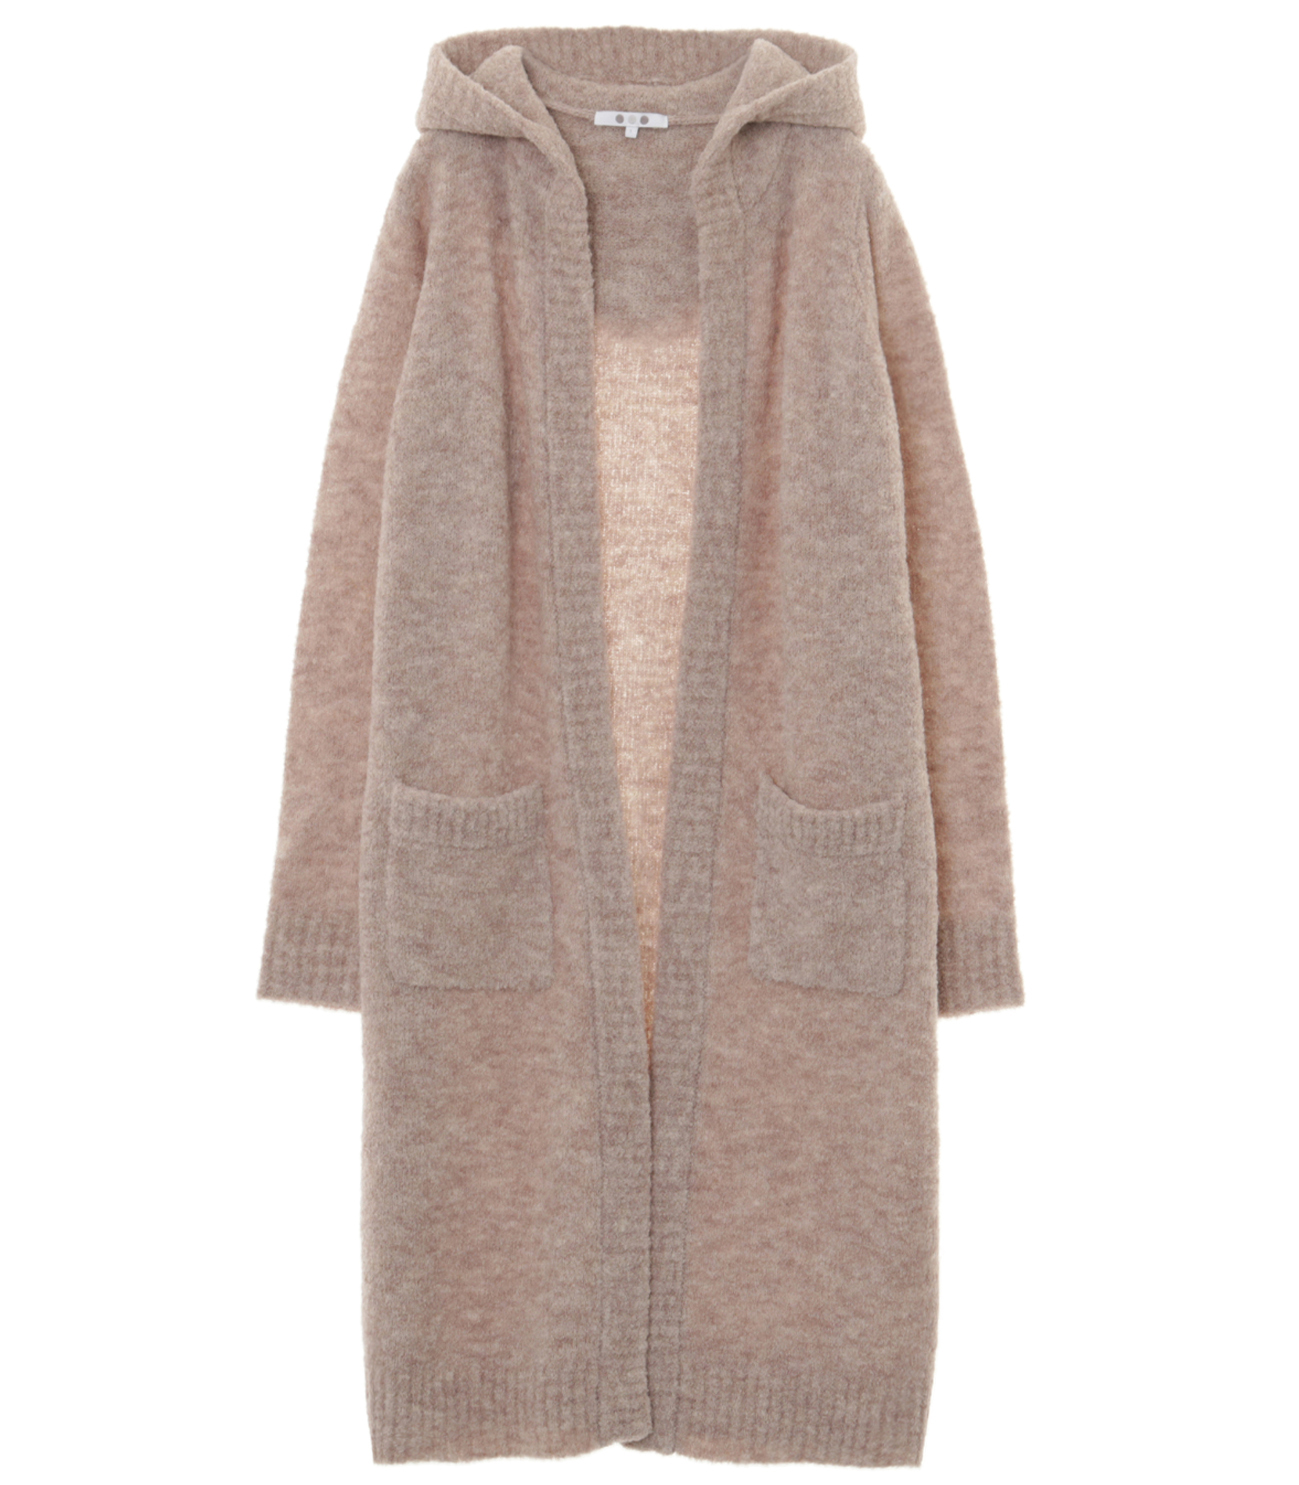 alpaca mixed boucle long cardy 詳細画像 beige 1